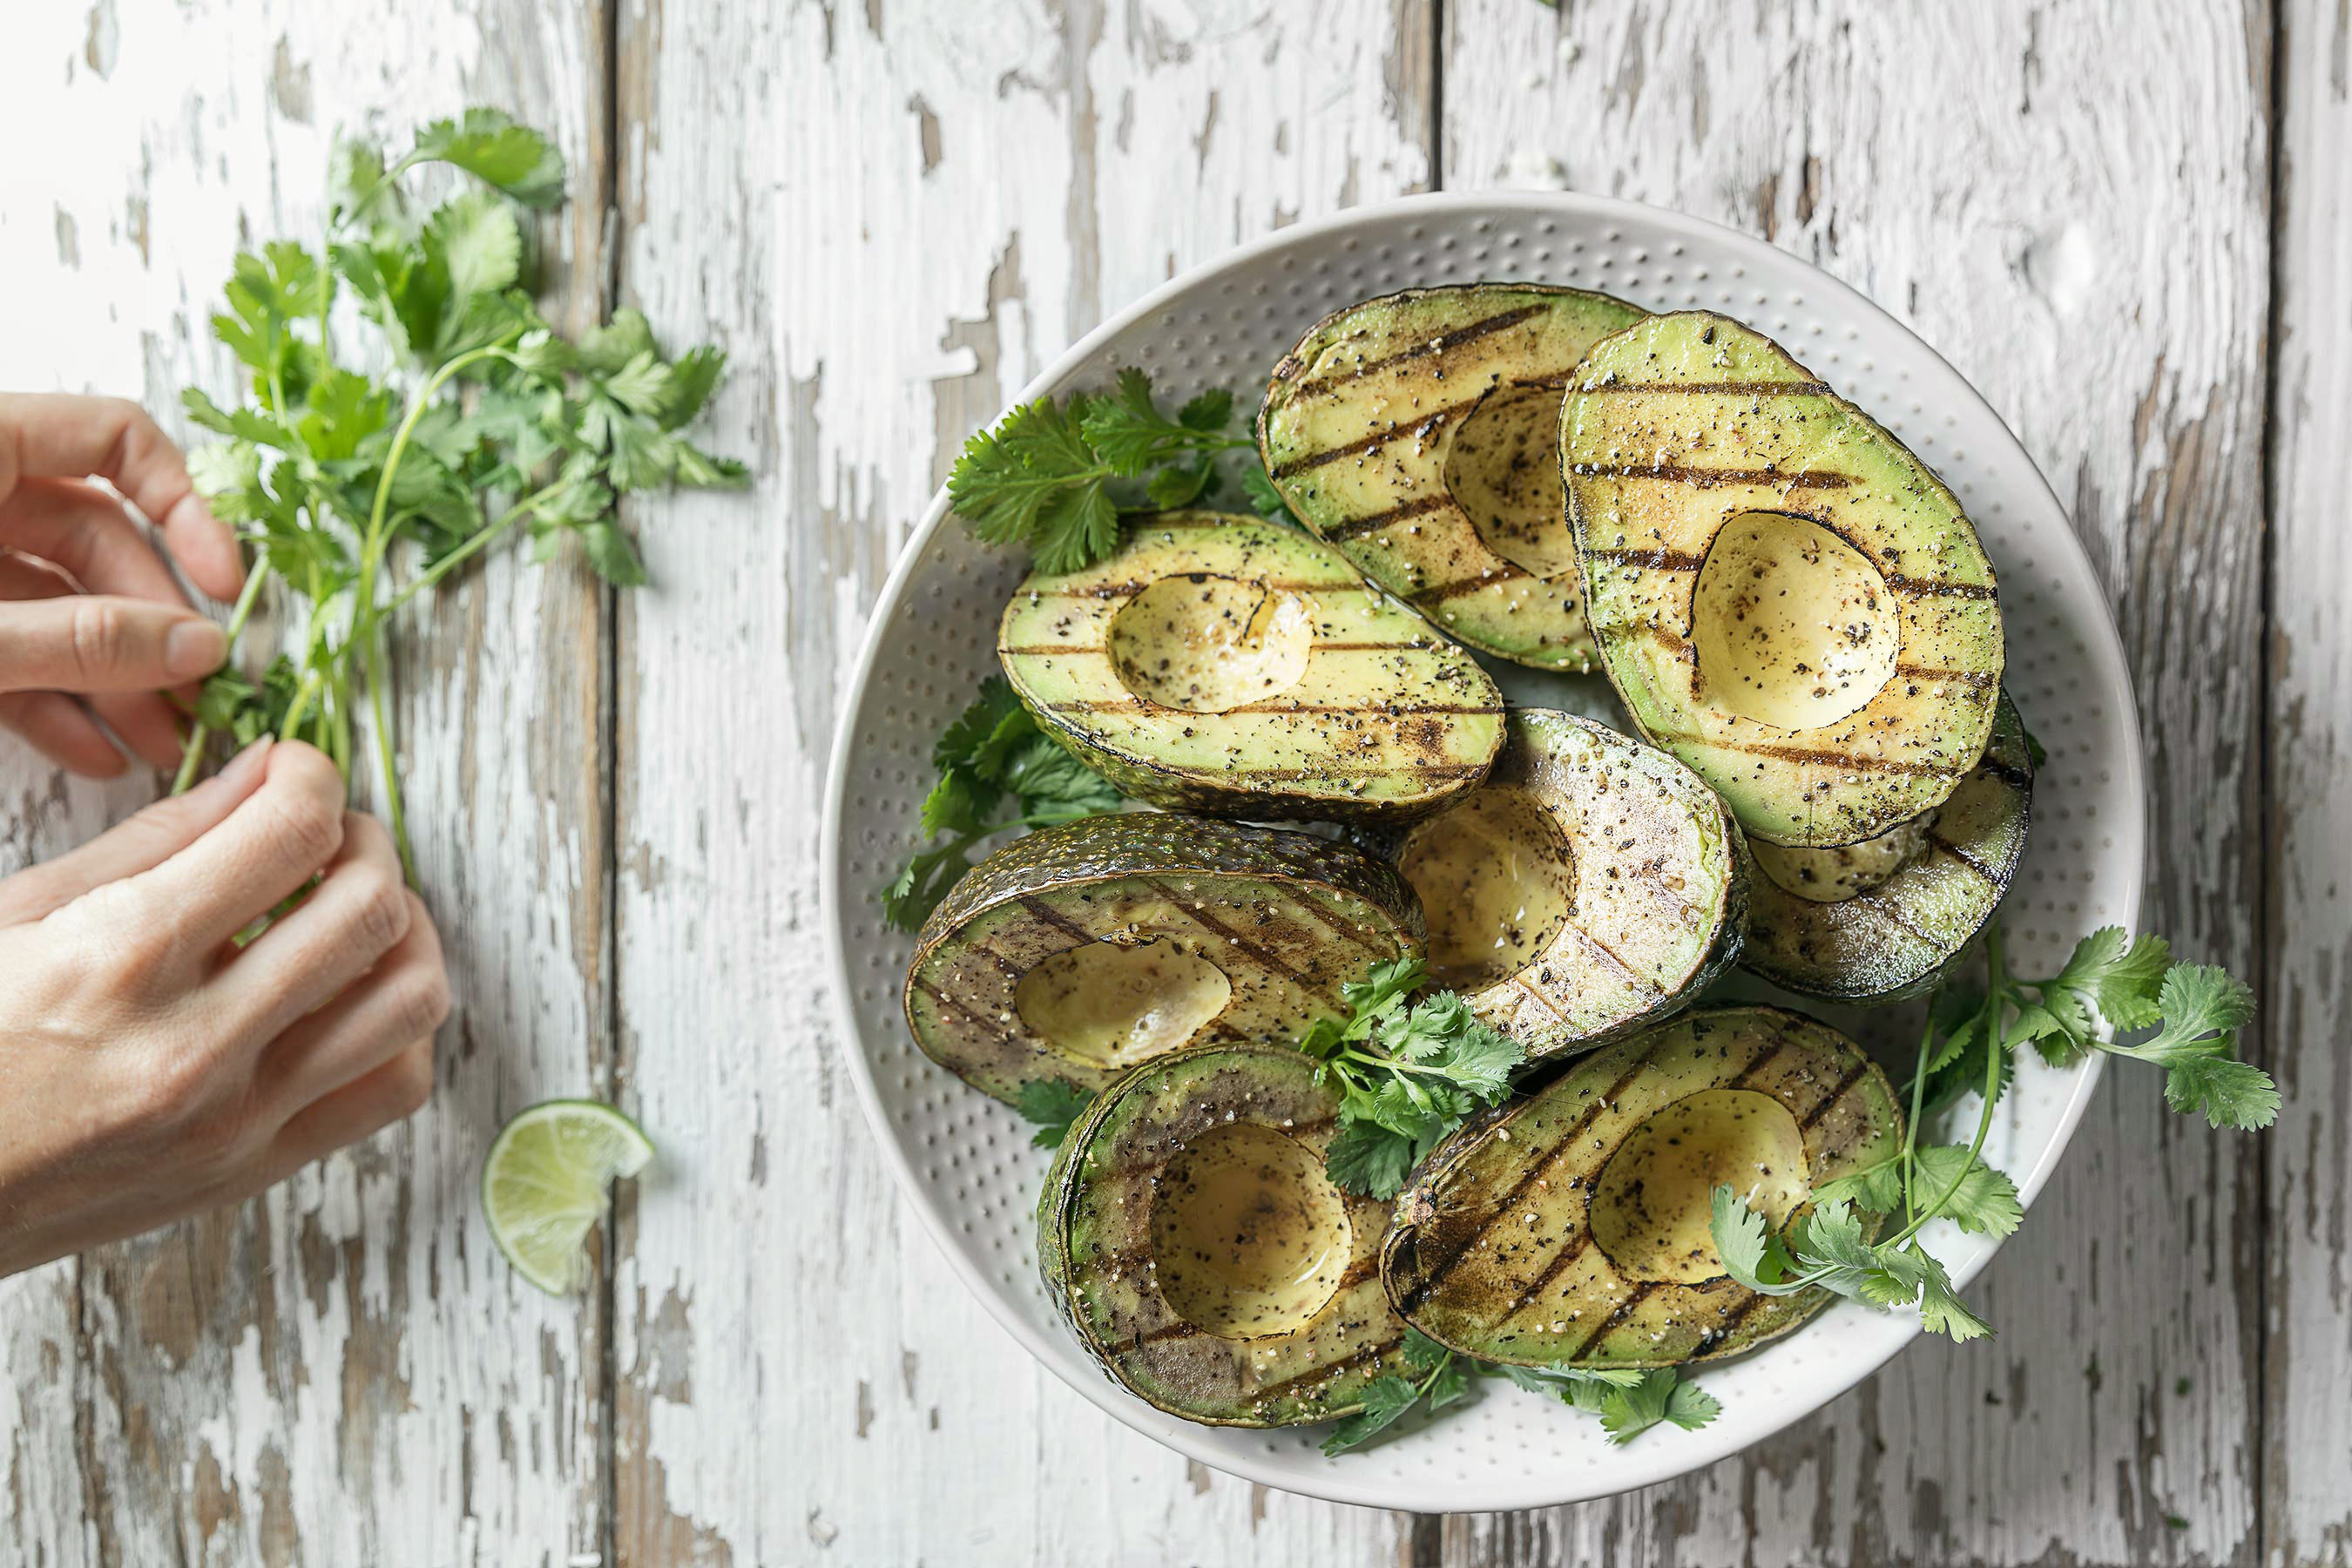 Halved Grilled Avocados with hands placing cilantro and lime